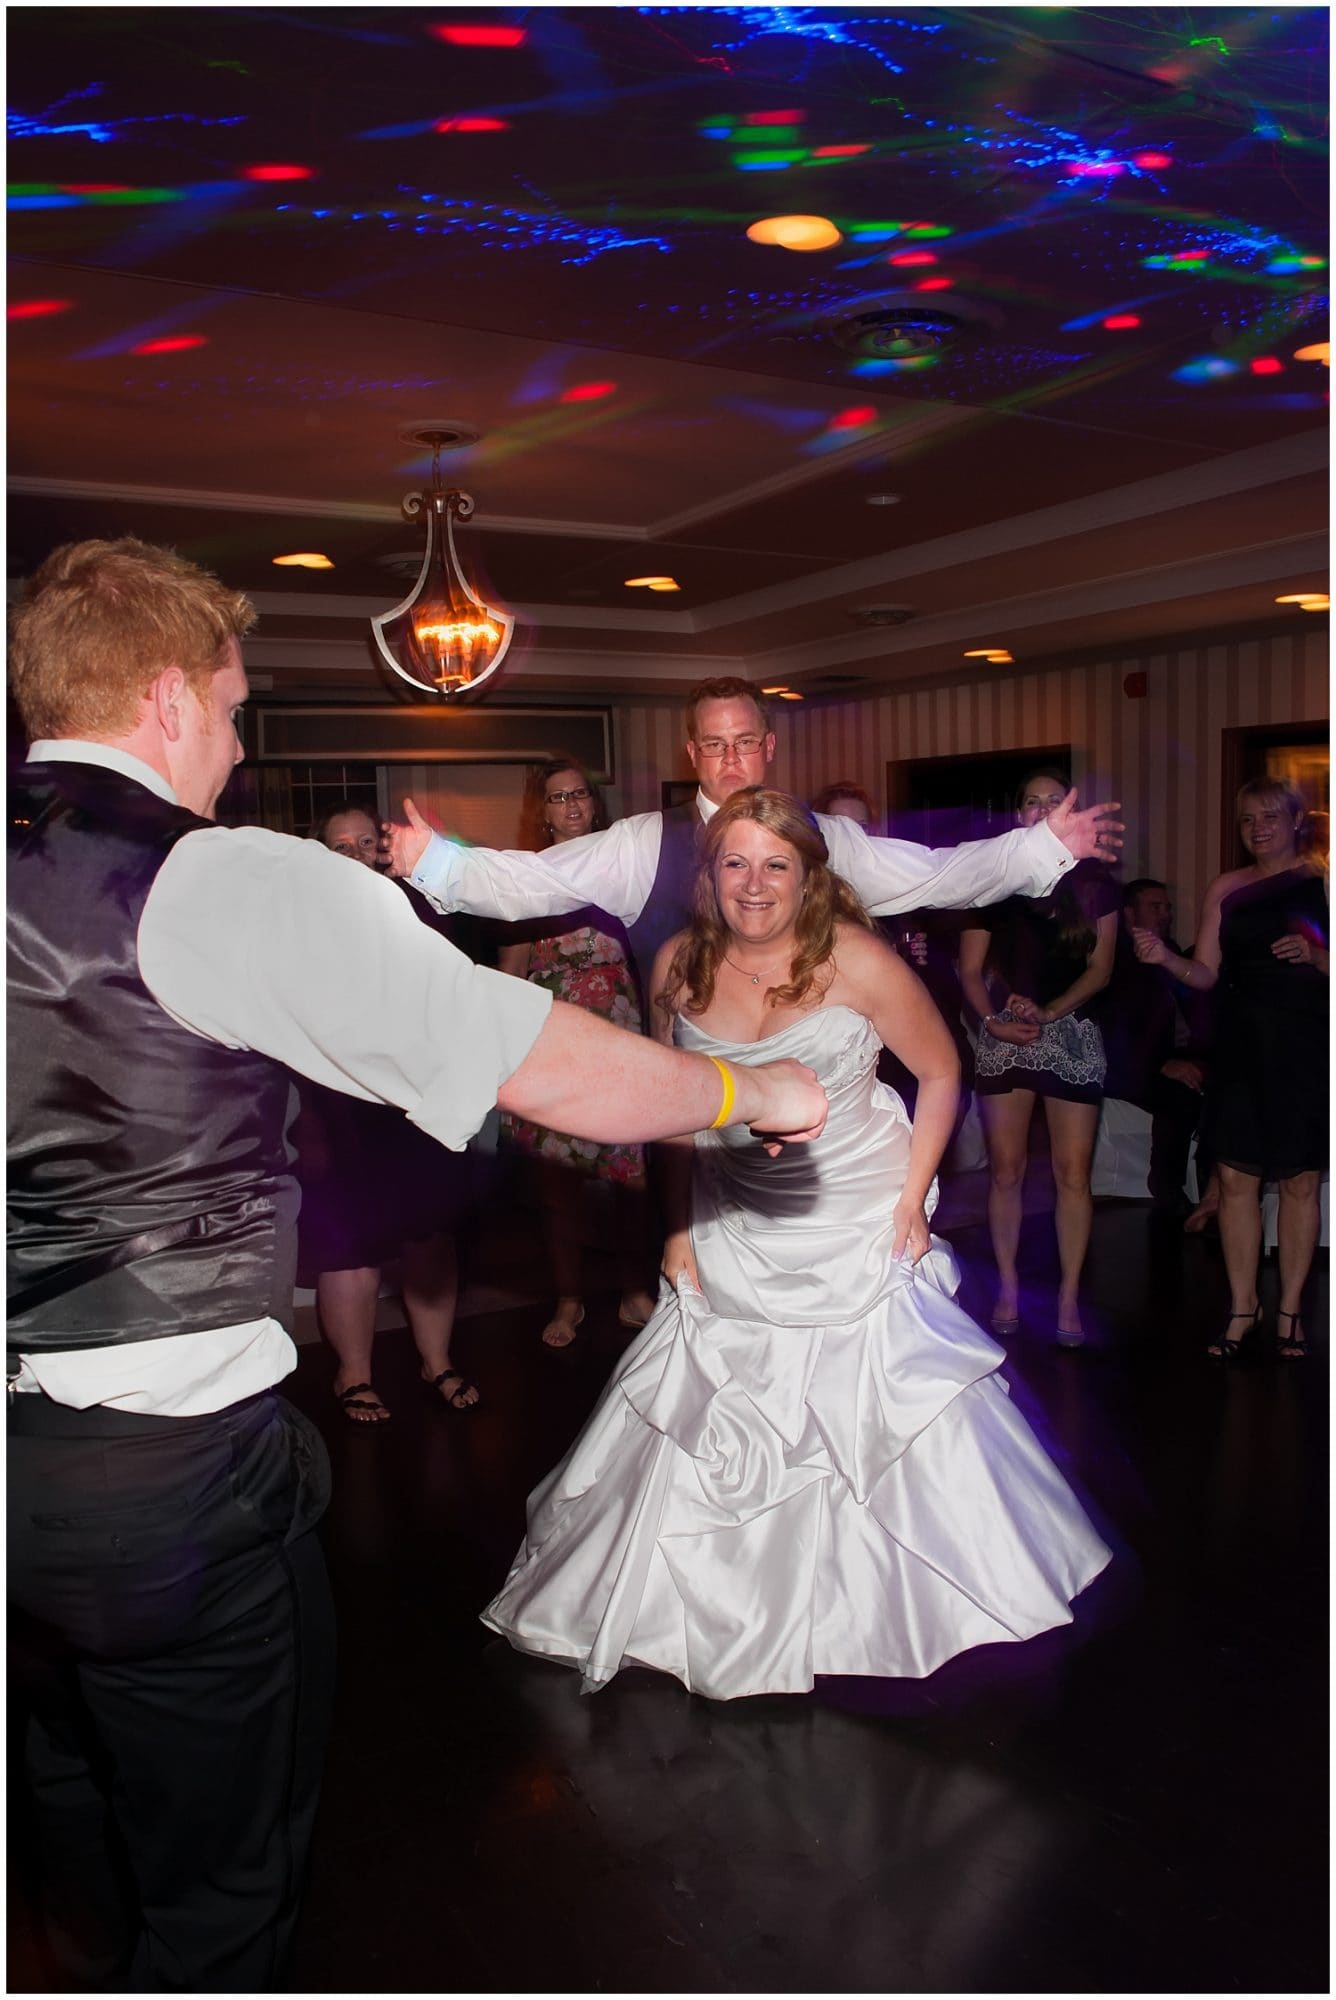 The bride and groom dancing together during their wedding reception at Ashburn Golf Club.